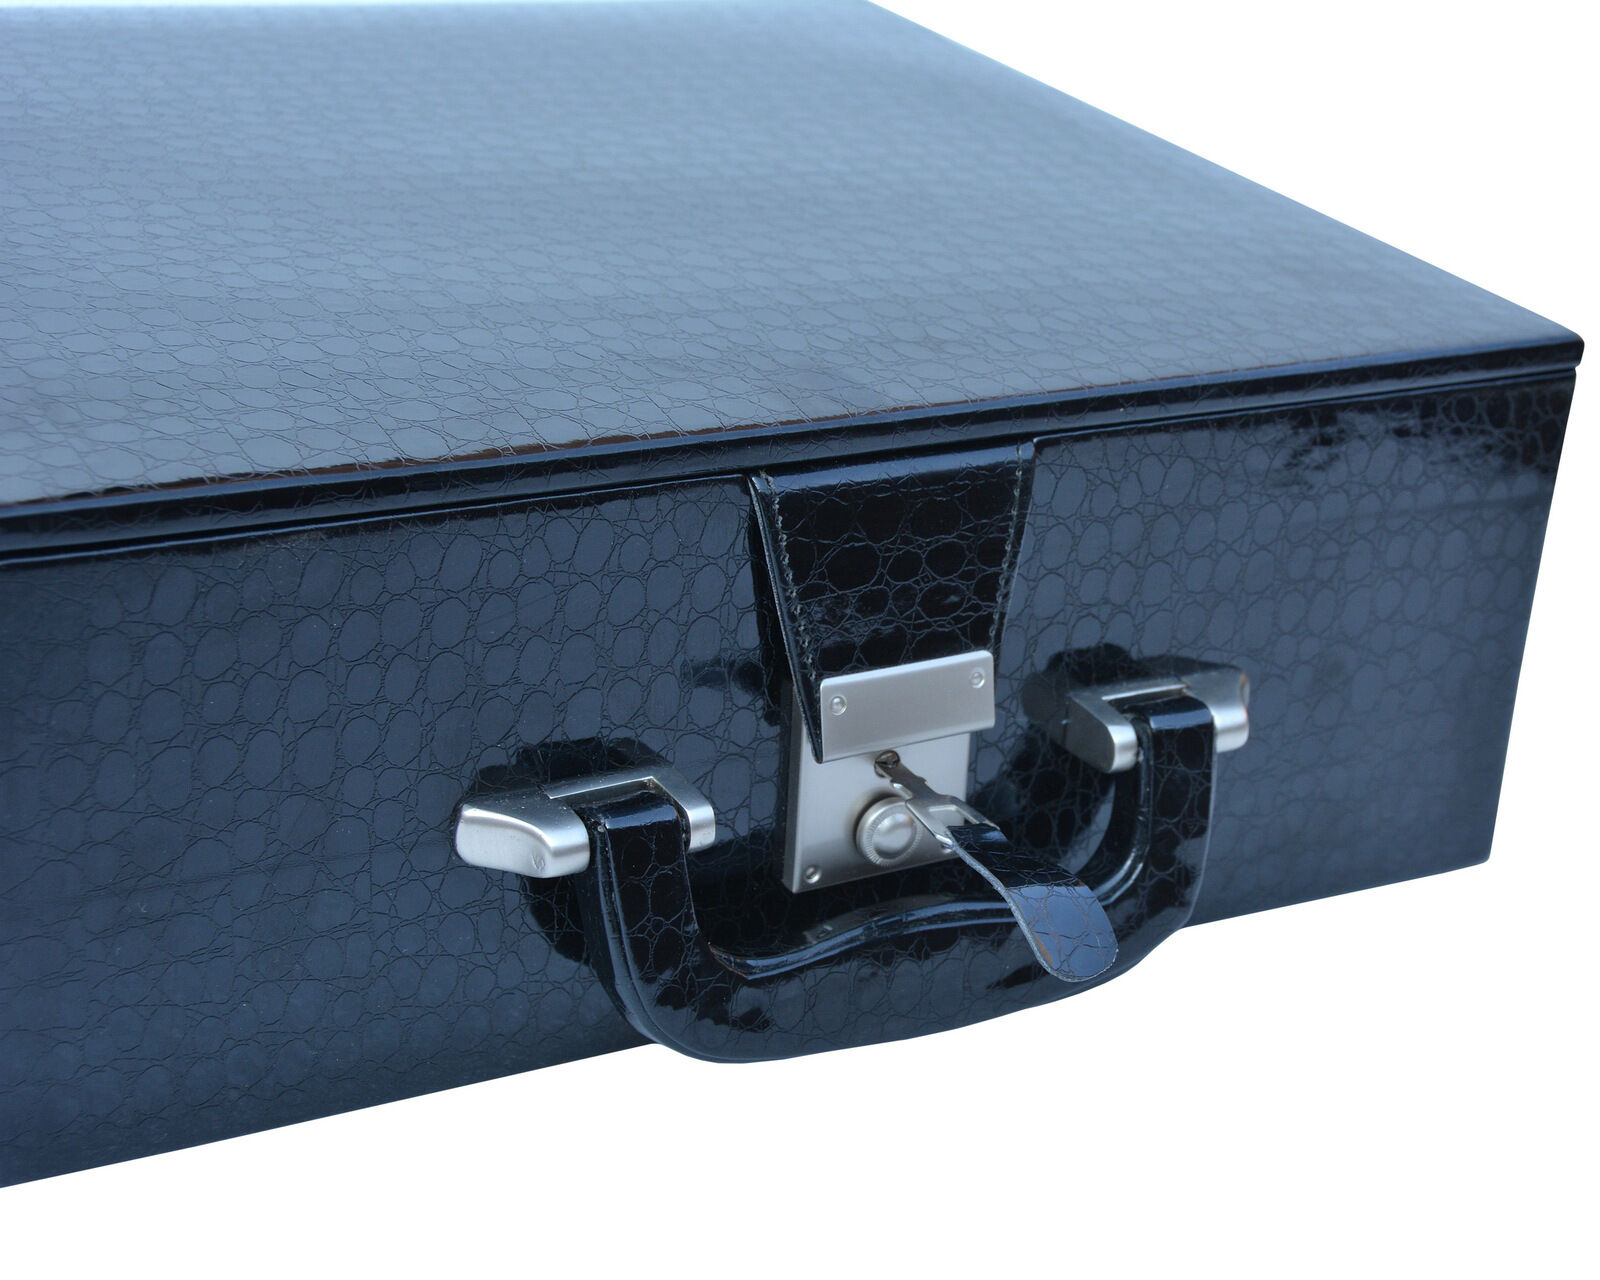 Leatherette storage box with Hi-Gloss Crocodile Pattern Finish for 3.6  - 4.1